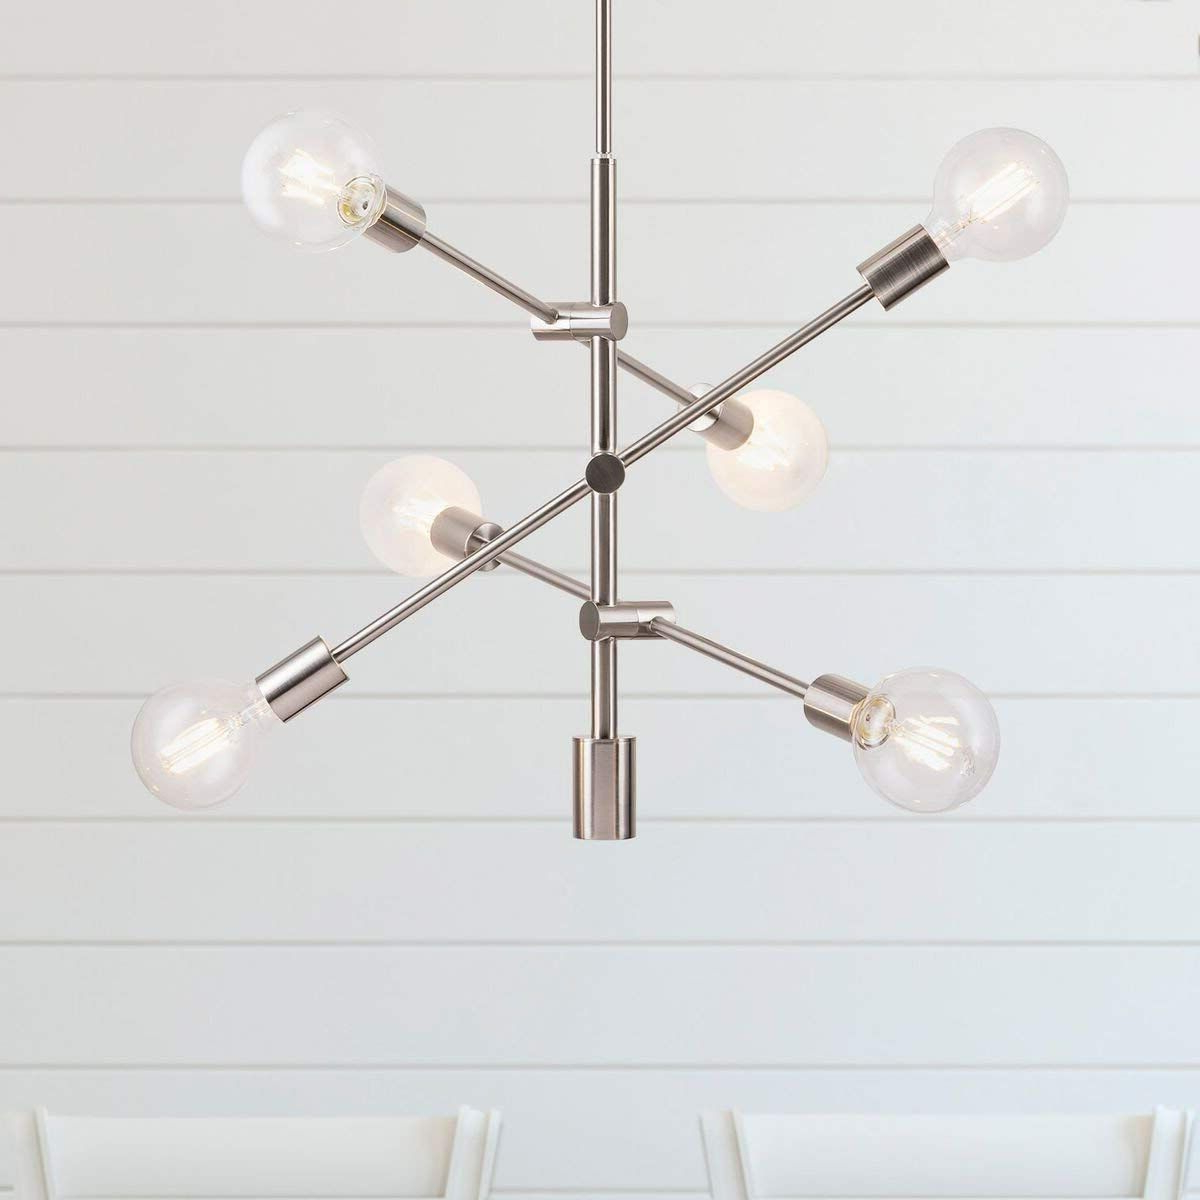 Eladia 6 Light Sputnik Chandeliers With Famous Marabella Led Sputnik Chandelier Light Fixture, Brushed (Gallery 11 of 25)